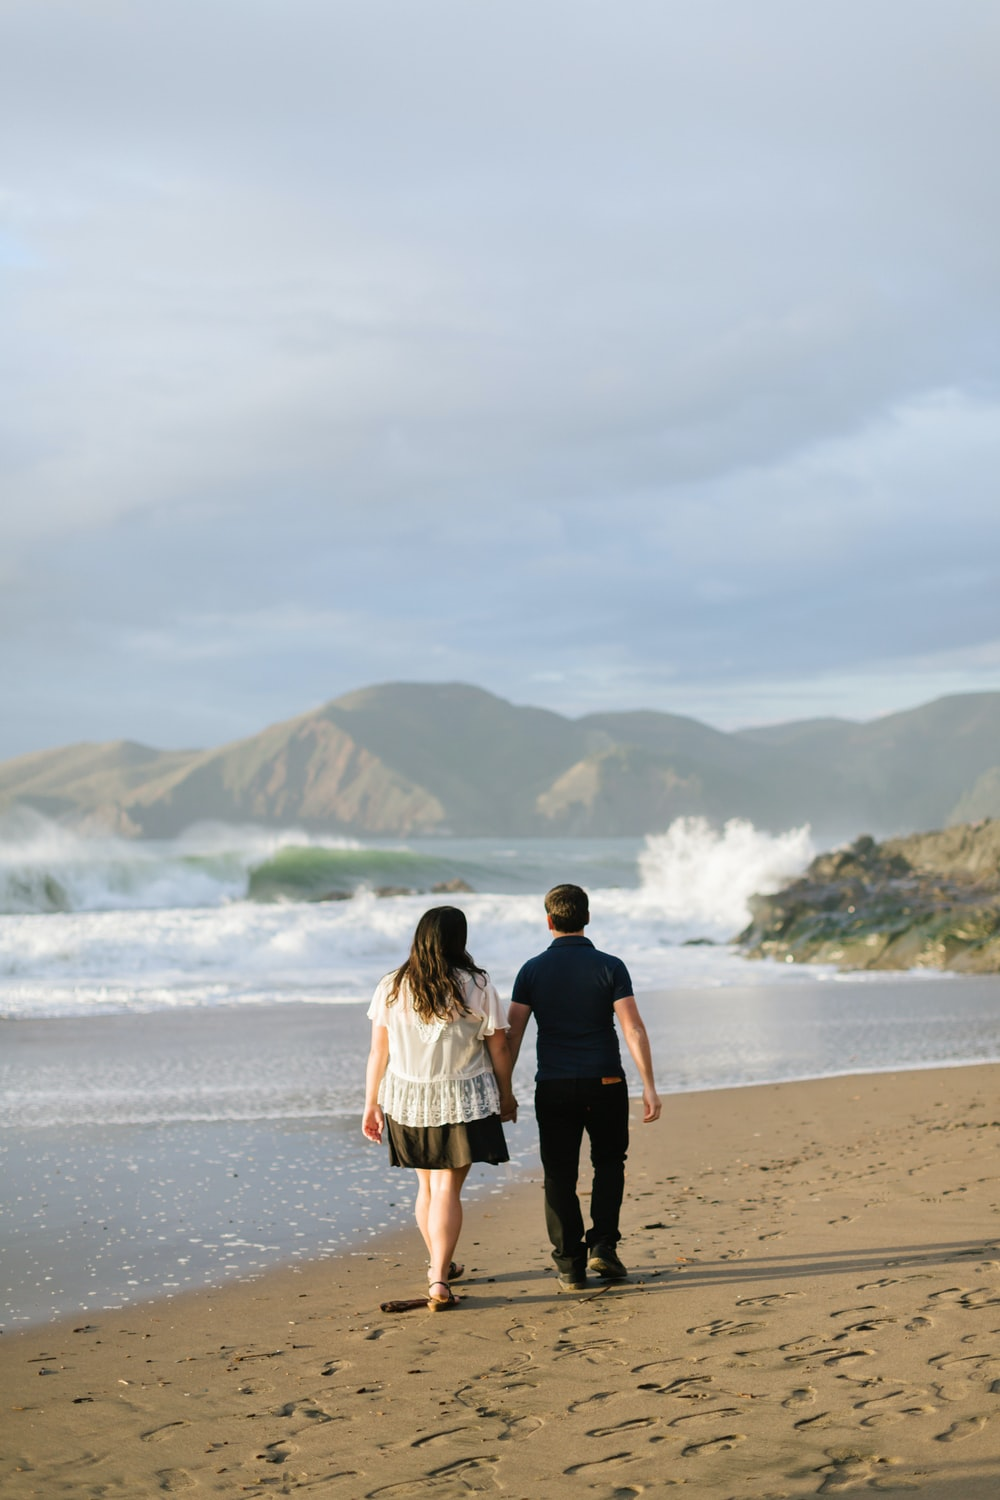 man and woman walking together on seashore